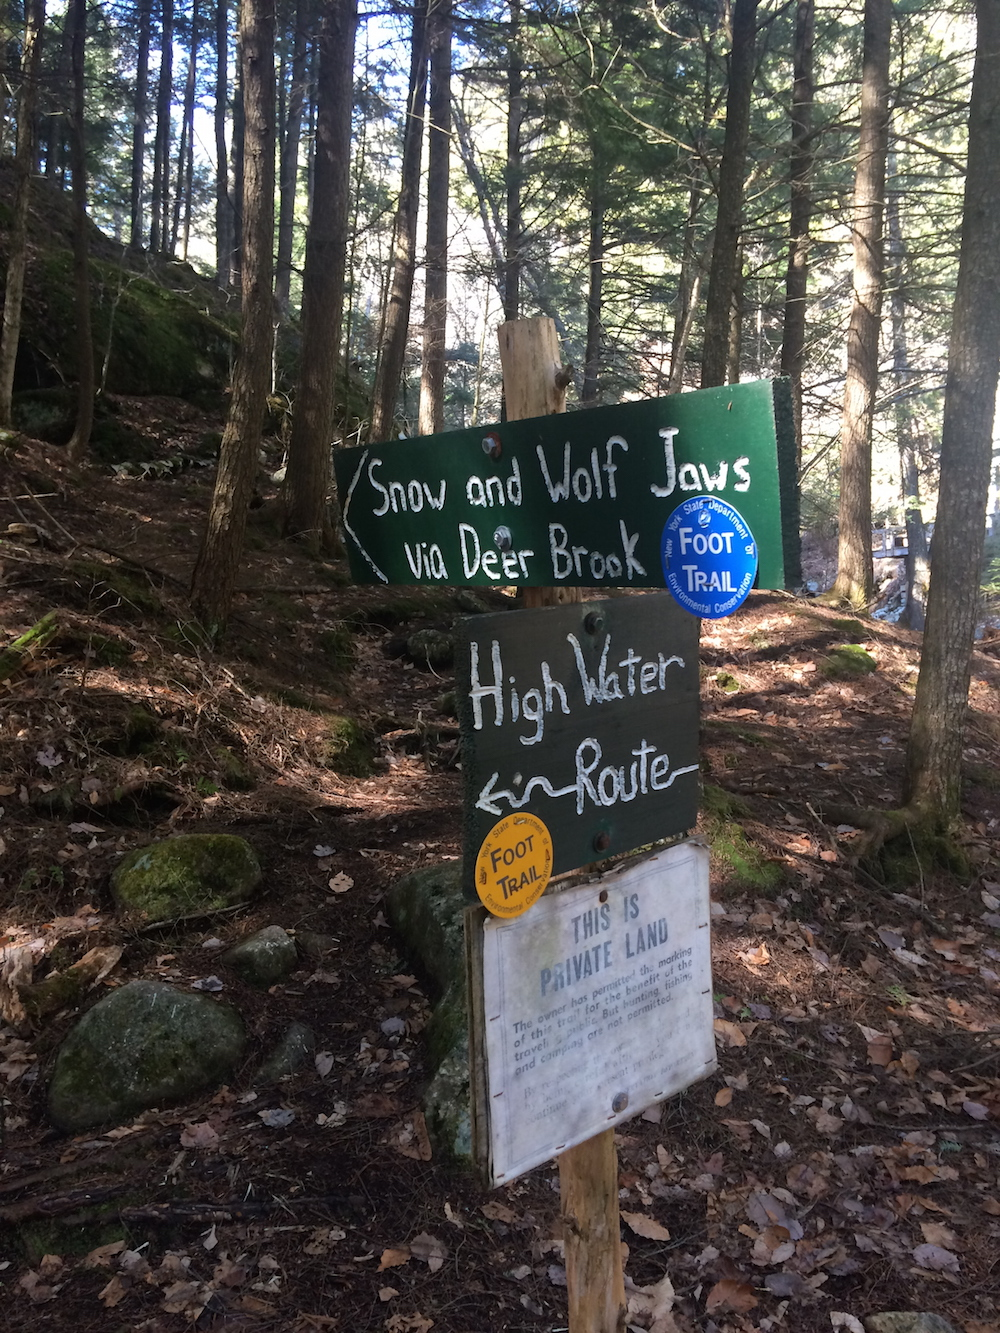 Signs on a hike for Snow and Wolf Jaws trails, and Deer Brook Trail, and the High Water Route